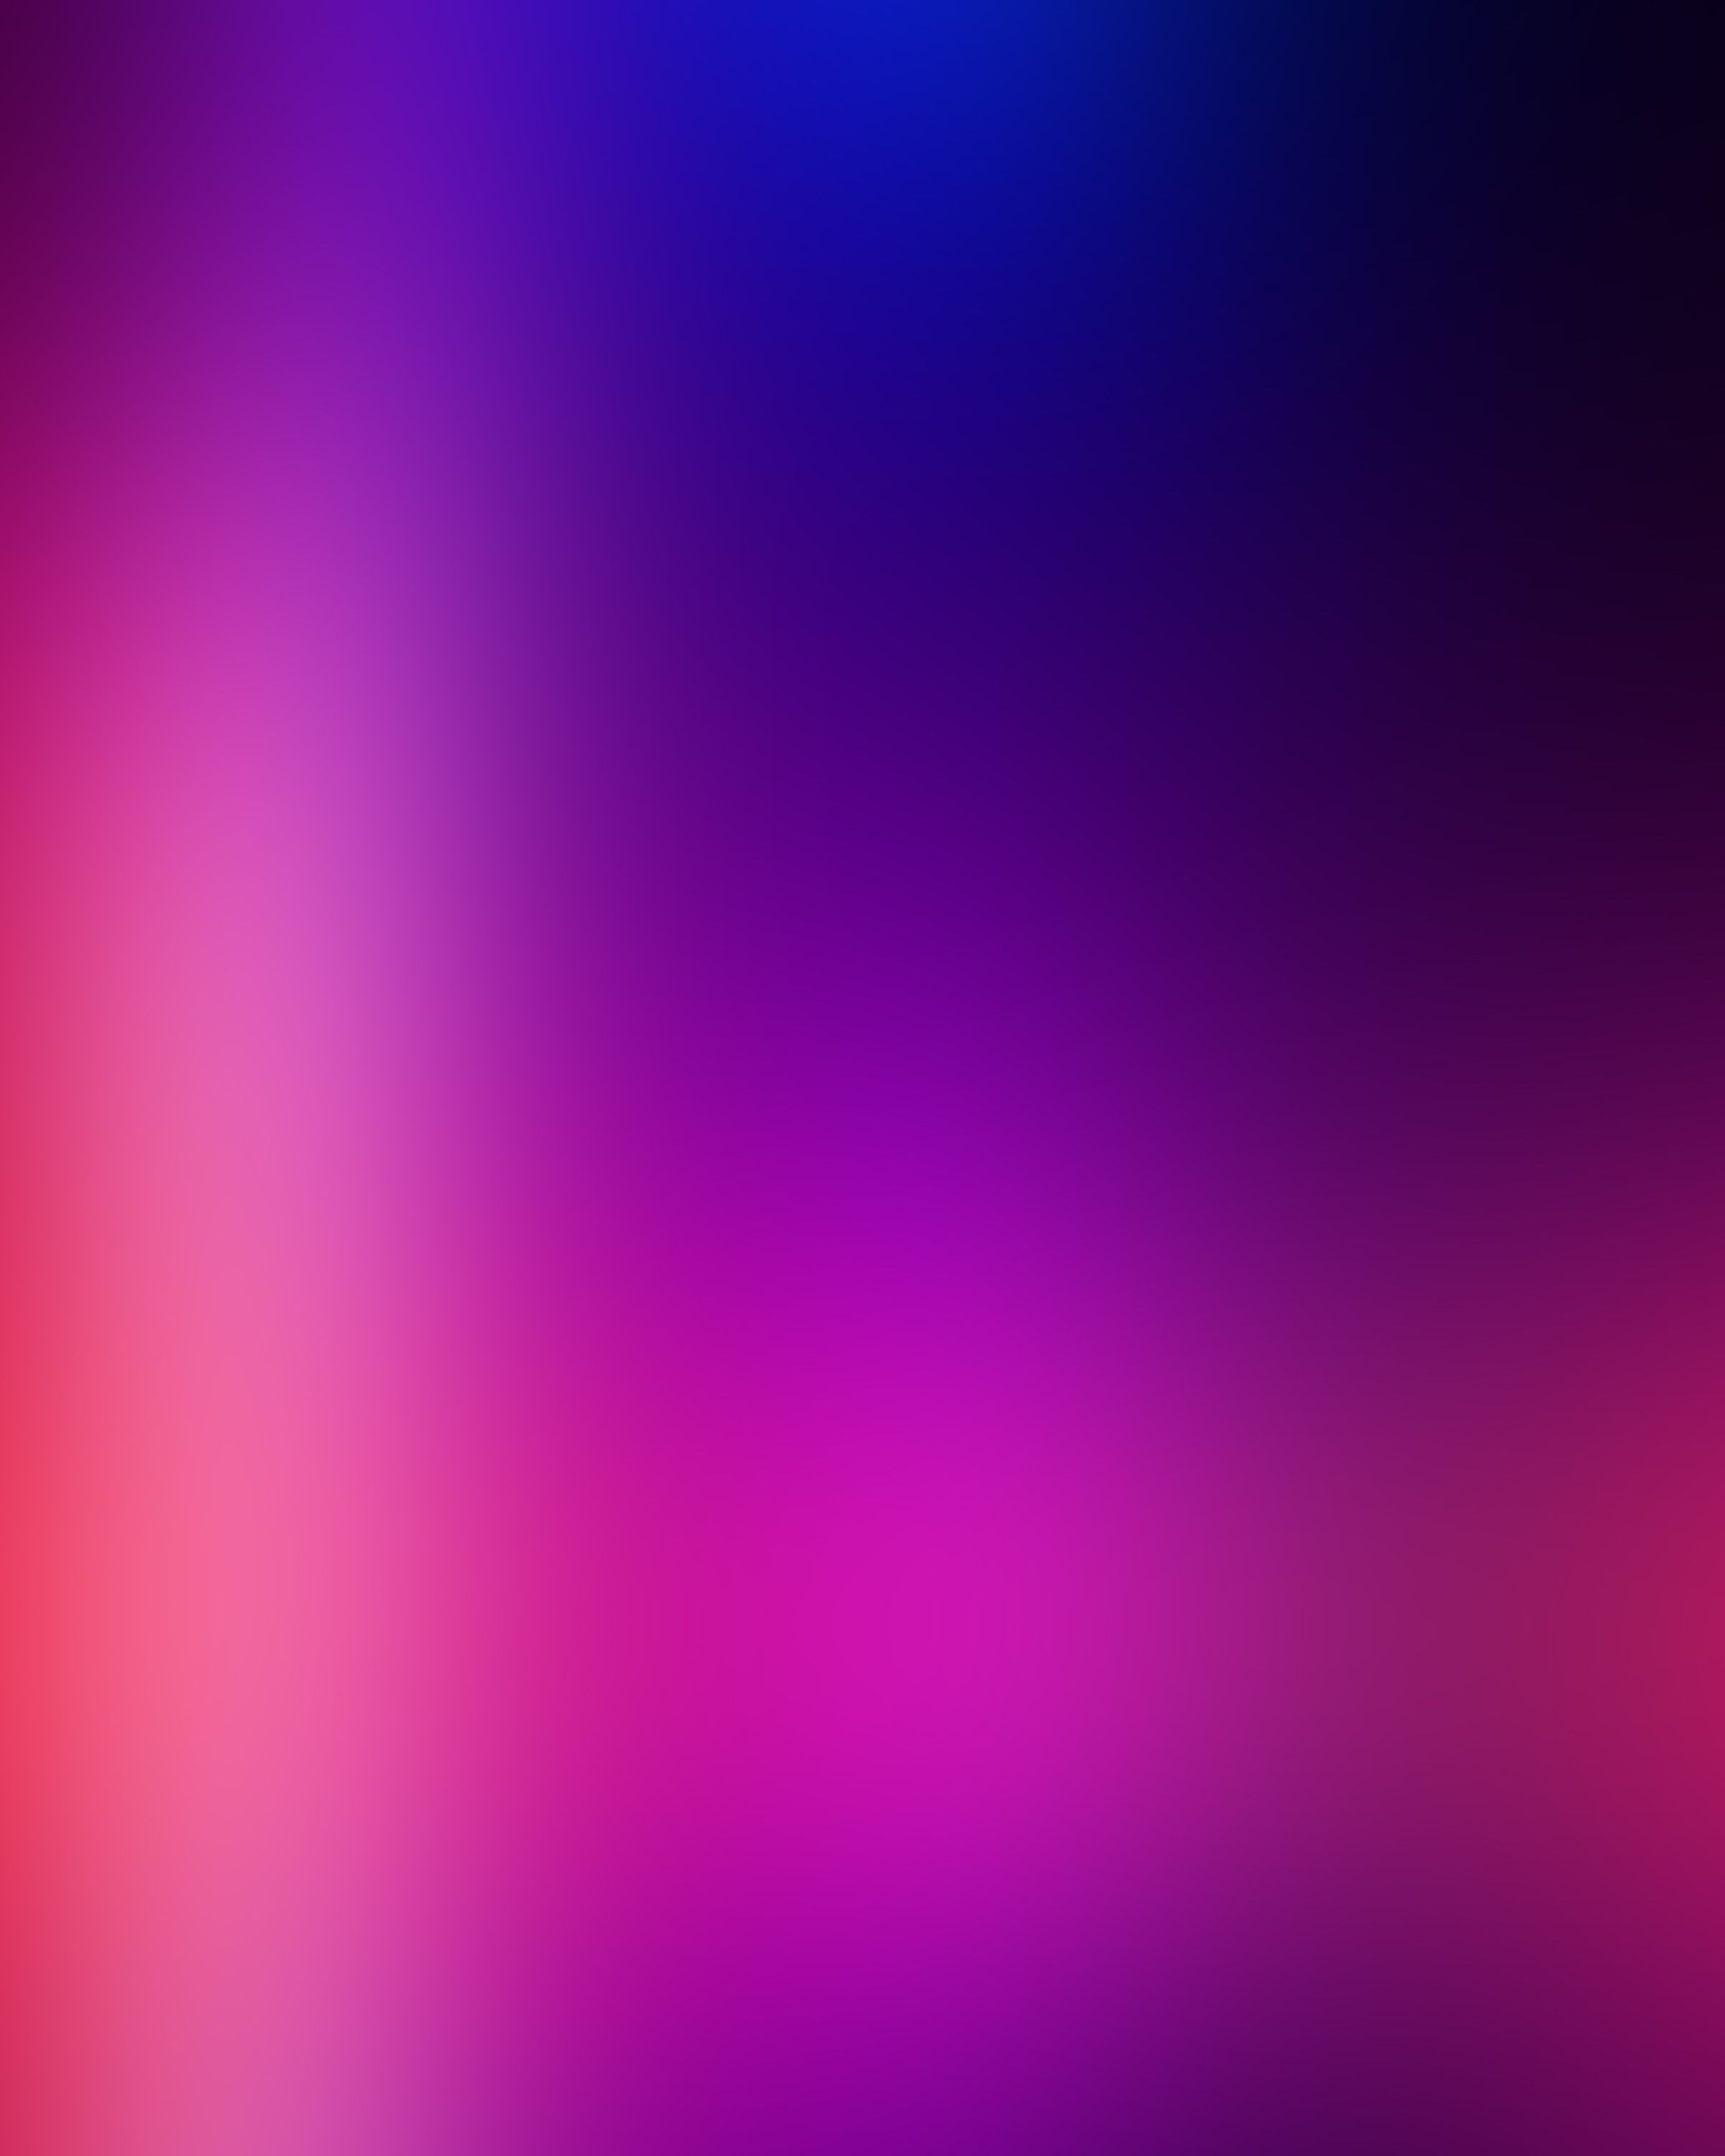 Abstract Digital Background Royalty Free Stock Photos Image